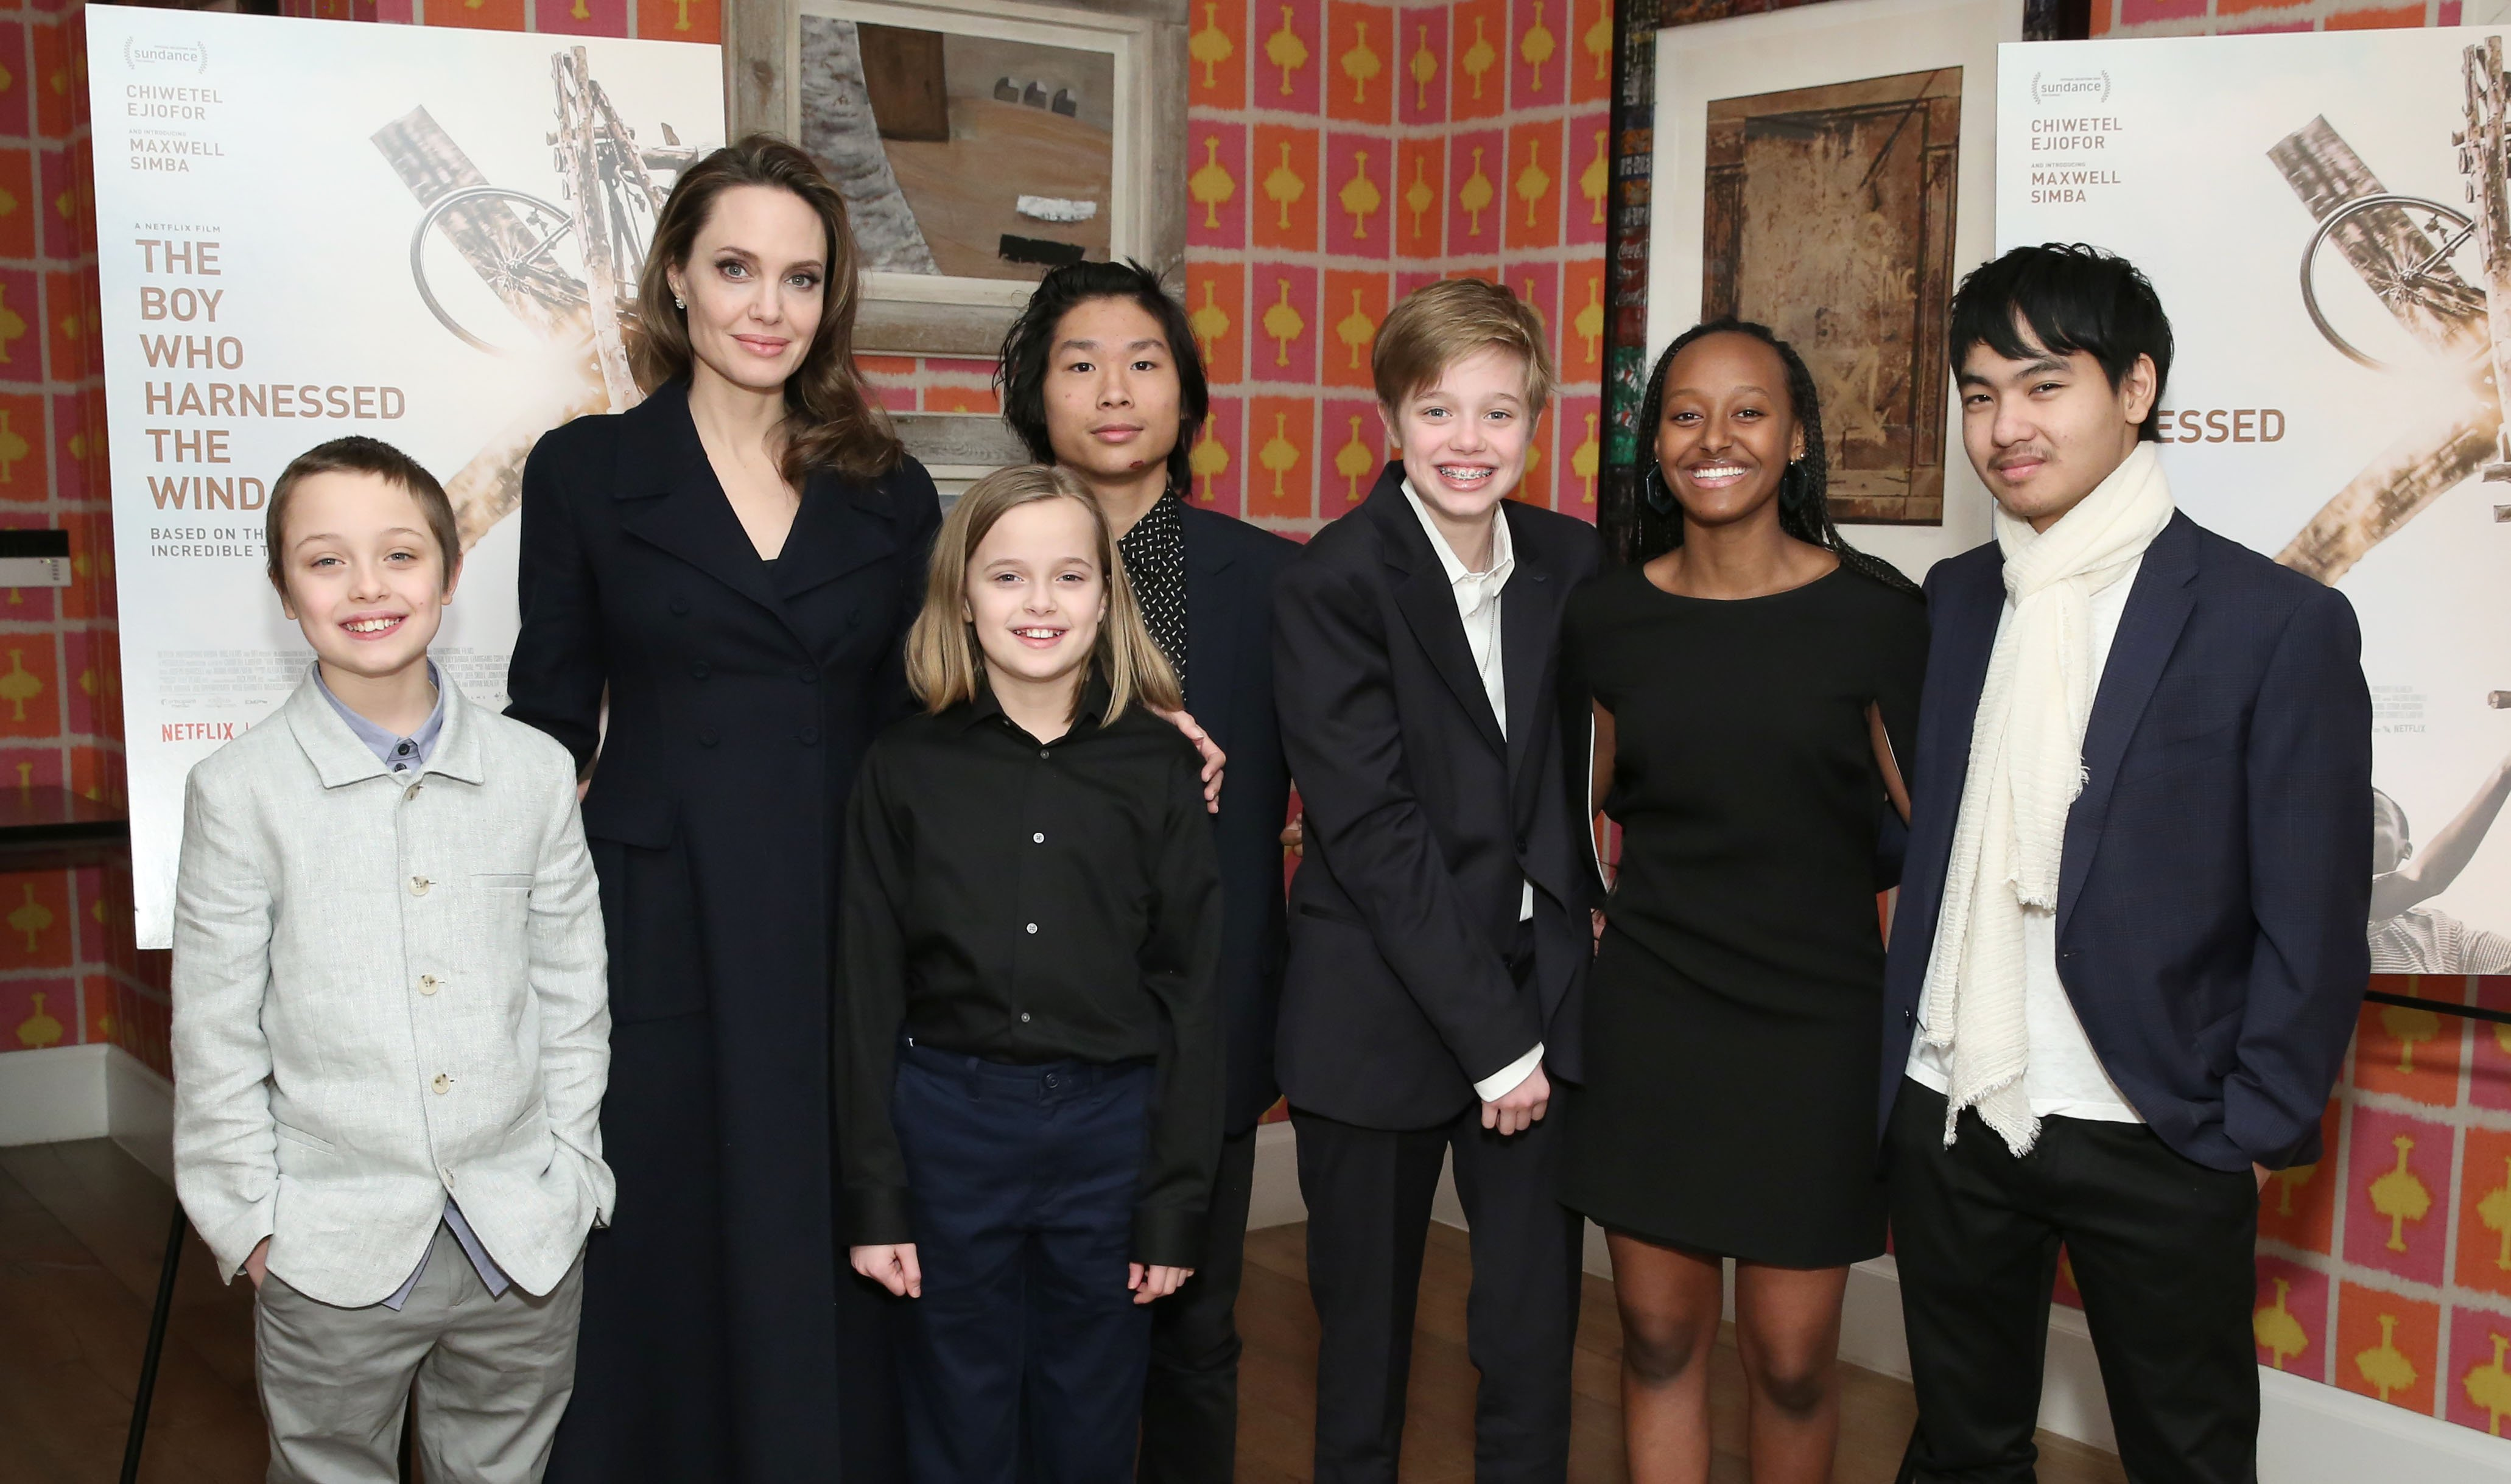 """Angelina Jolie and her children attend a special screening of """"The Boy Who Harnessed The Wind"""" in New York City on February 25, 2019 